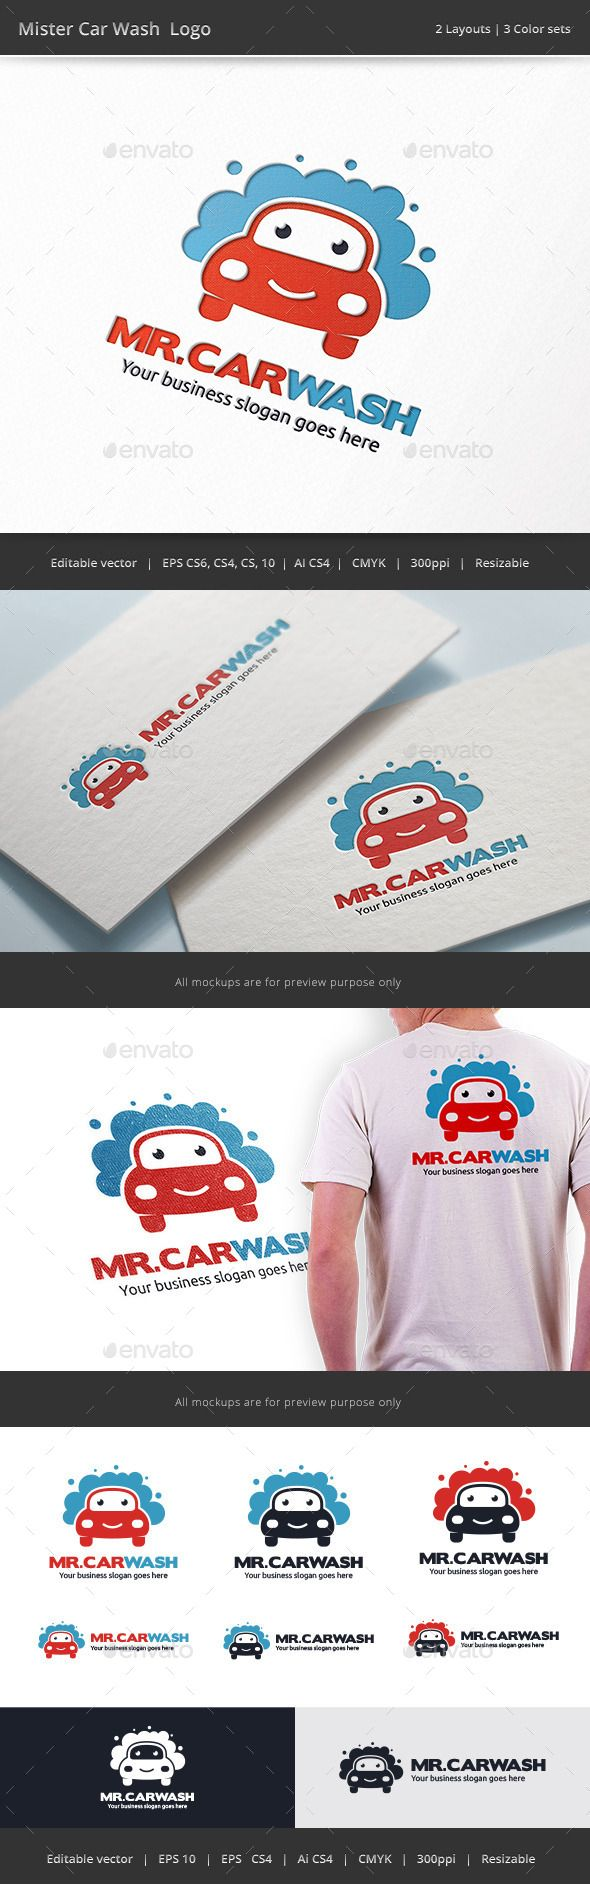 Mister Car Wash  - Logo Design Template Vector #logotype Download it here: http://graphicriver.net/item/mister-car-wash-logo/9433061?s_rank=1346?ref=nexion